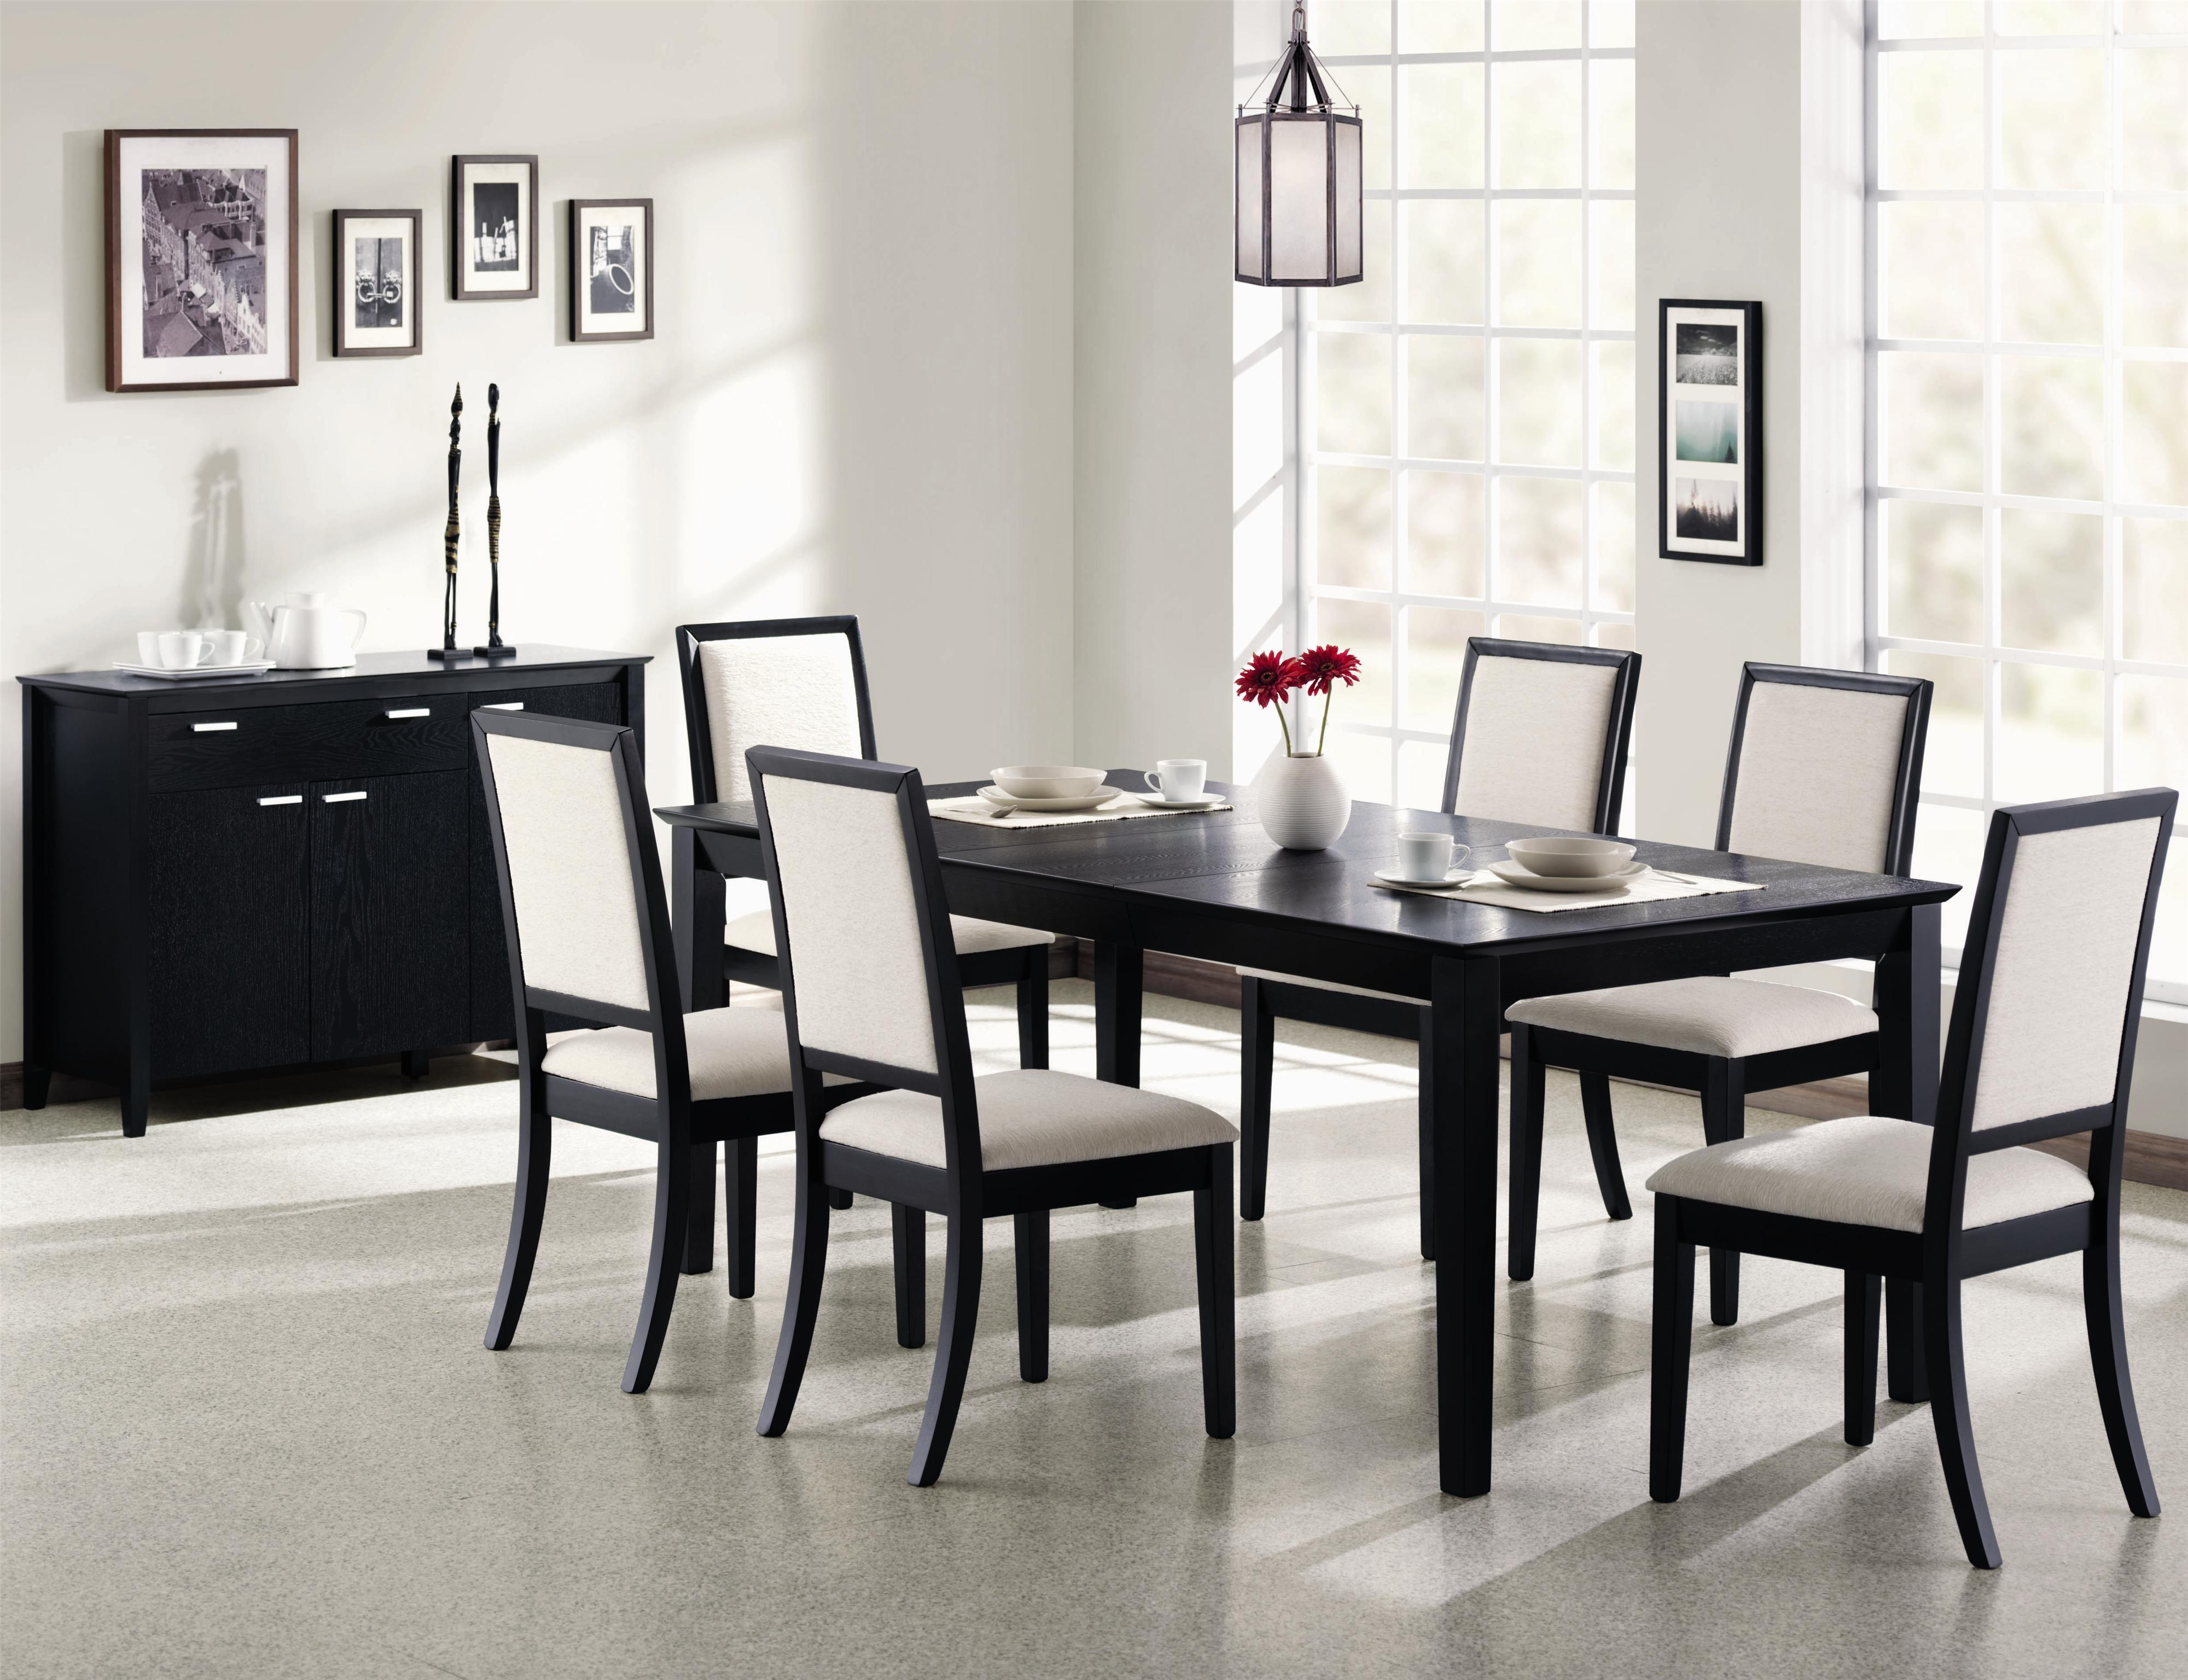 Modern dining room black and white info home and furniture - Black And Wood Kitchen Table Chairs Kitchen Design Ideas And Simple Wood Dining Room Chairs